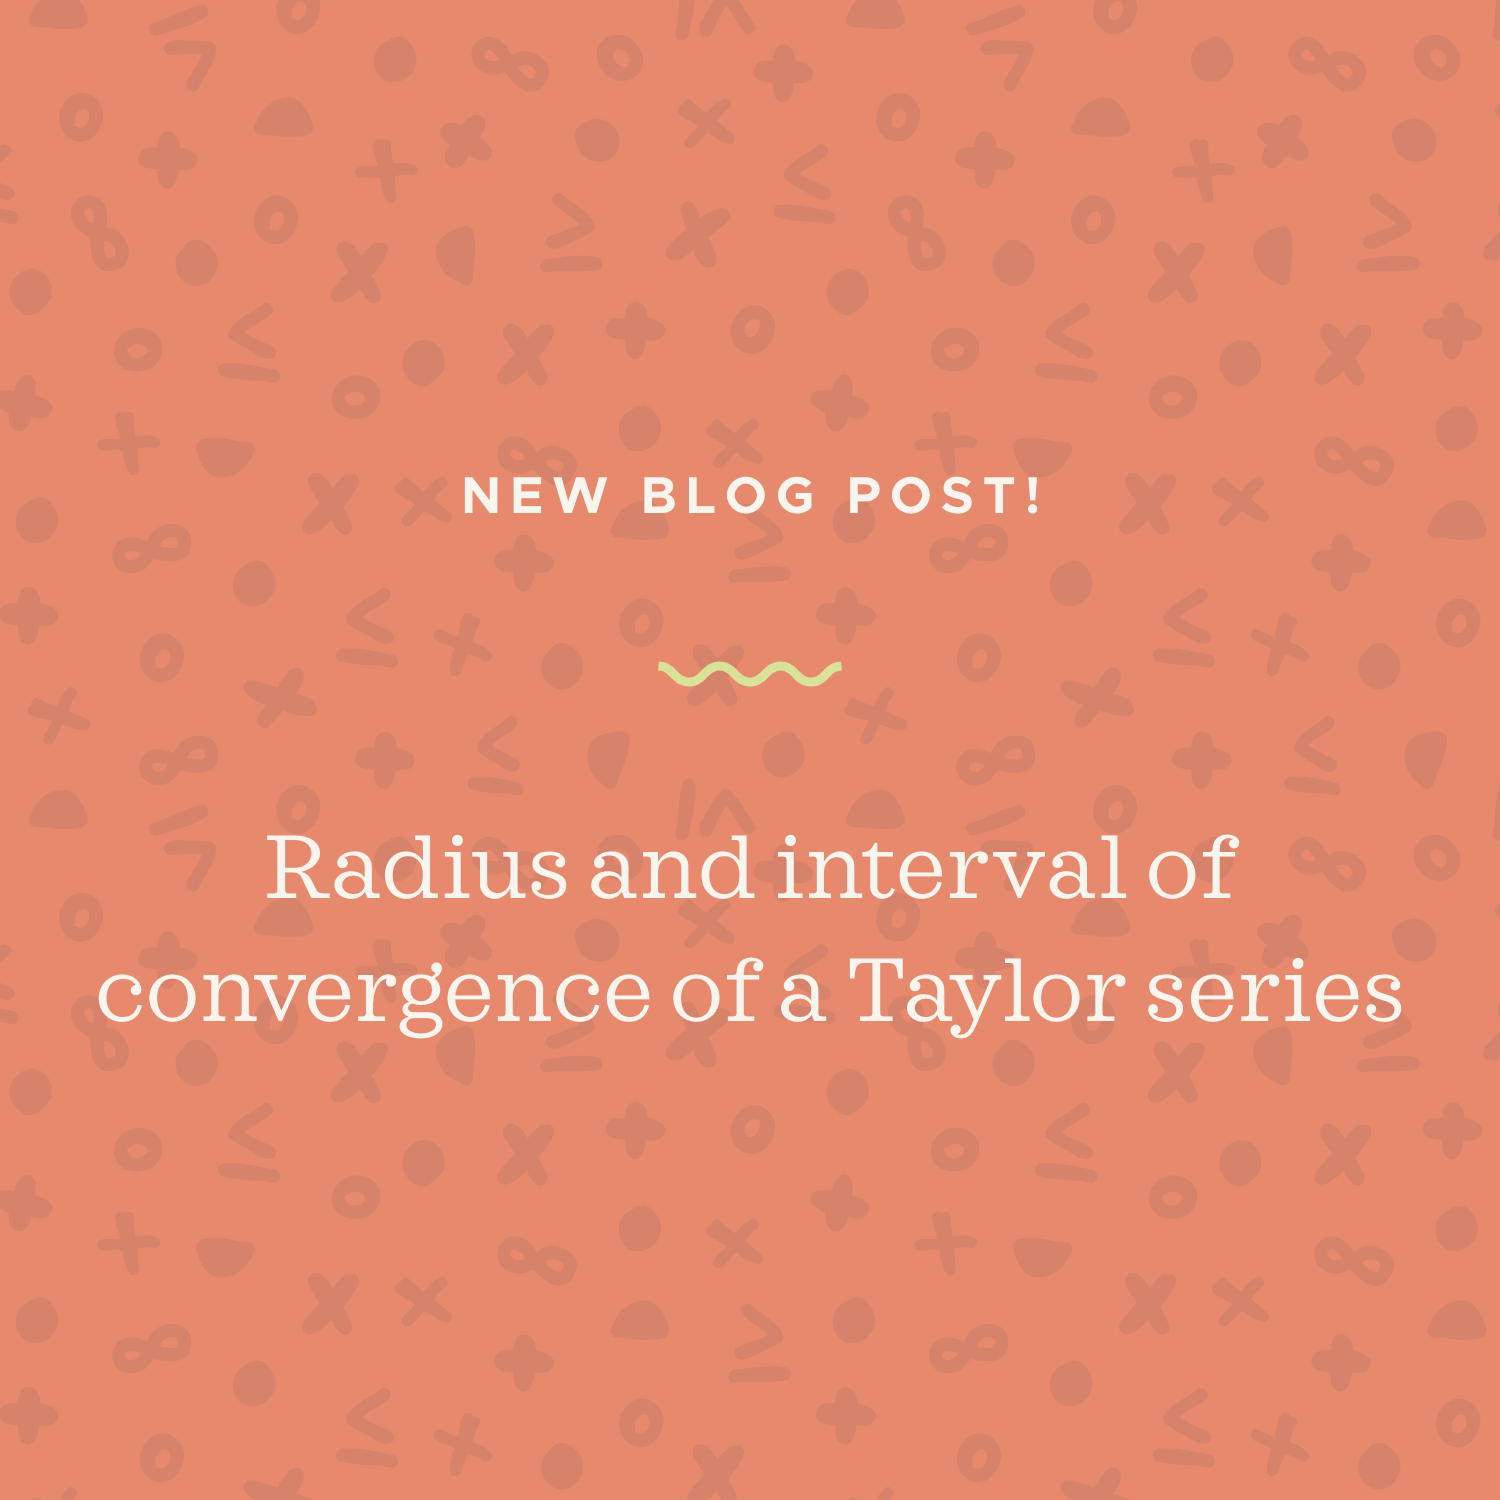 Radius and interval of convergence of a Taylor series blog post.jpeg